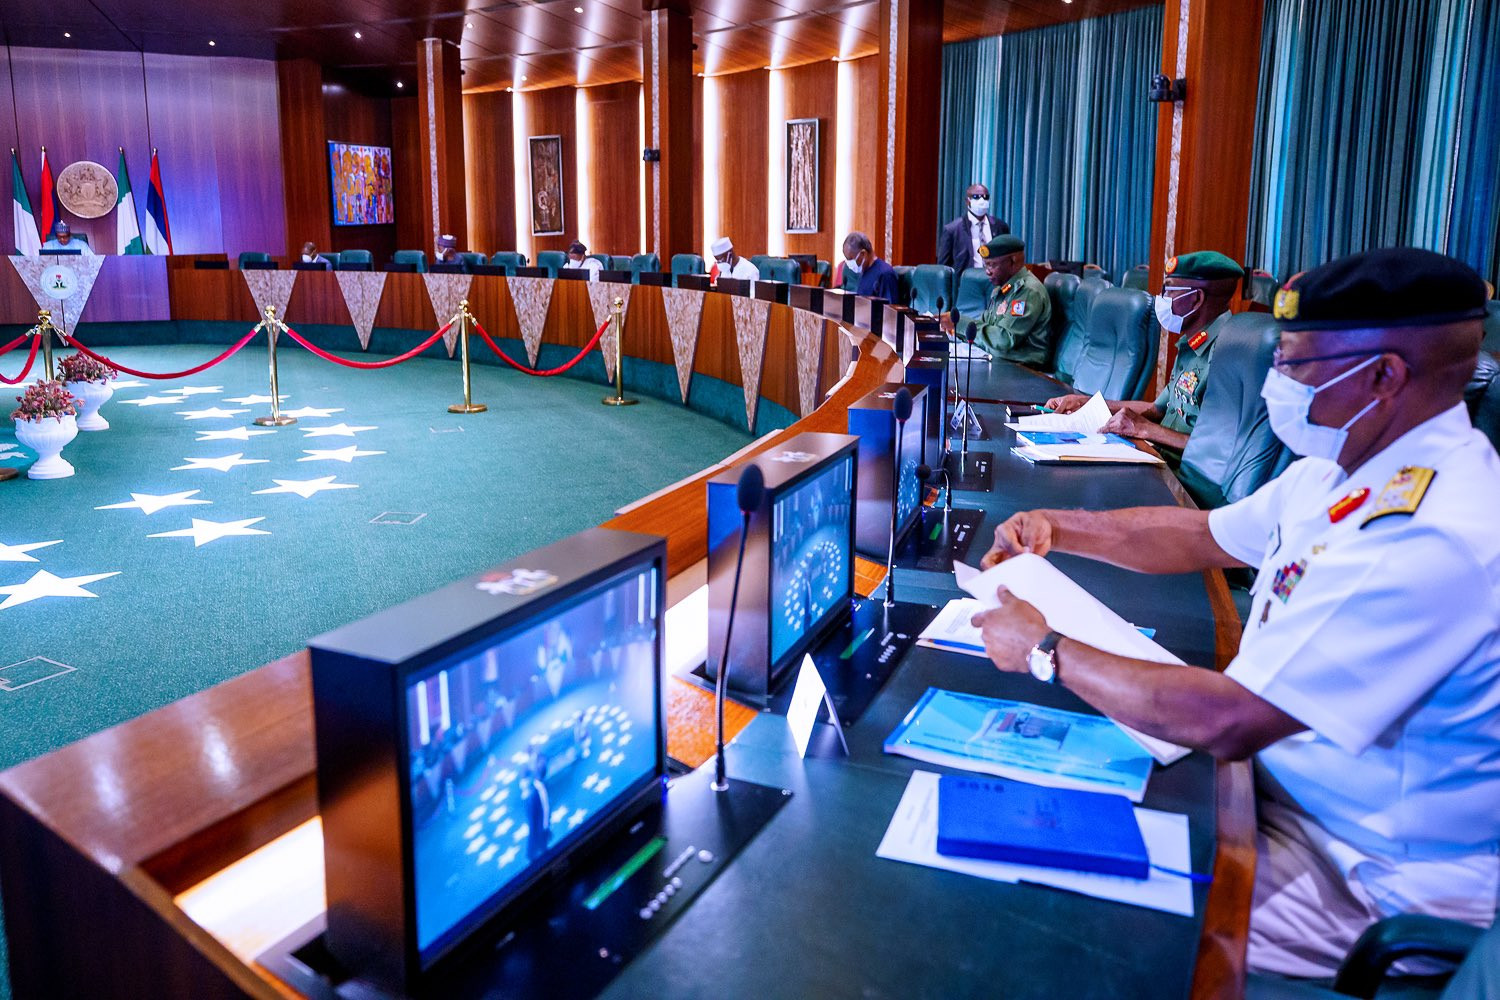 President Buhari summons security chiefs over recent security challenges in some part of the country (photos)